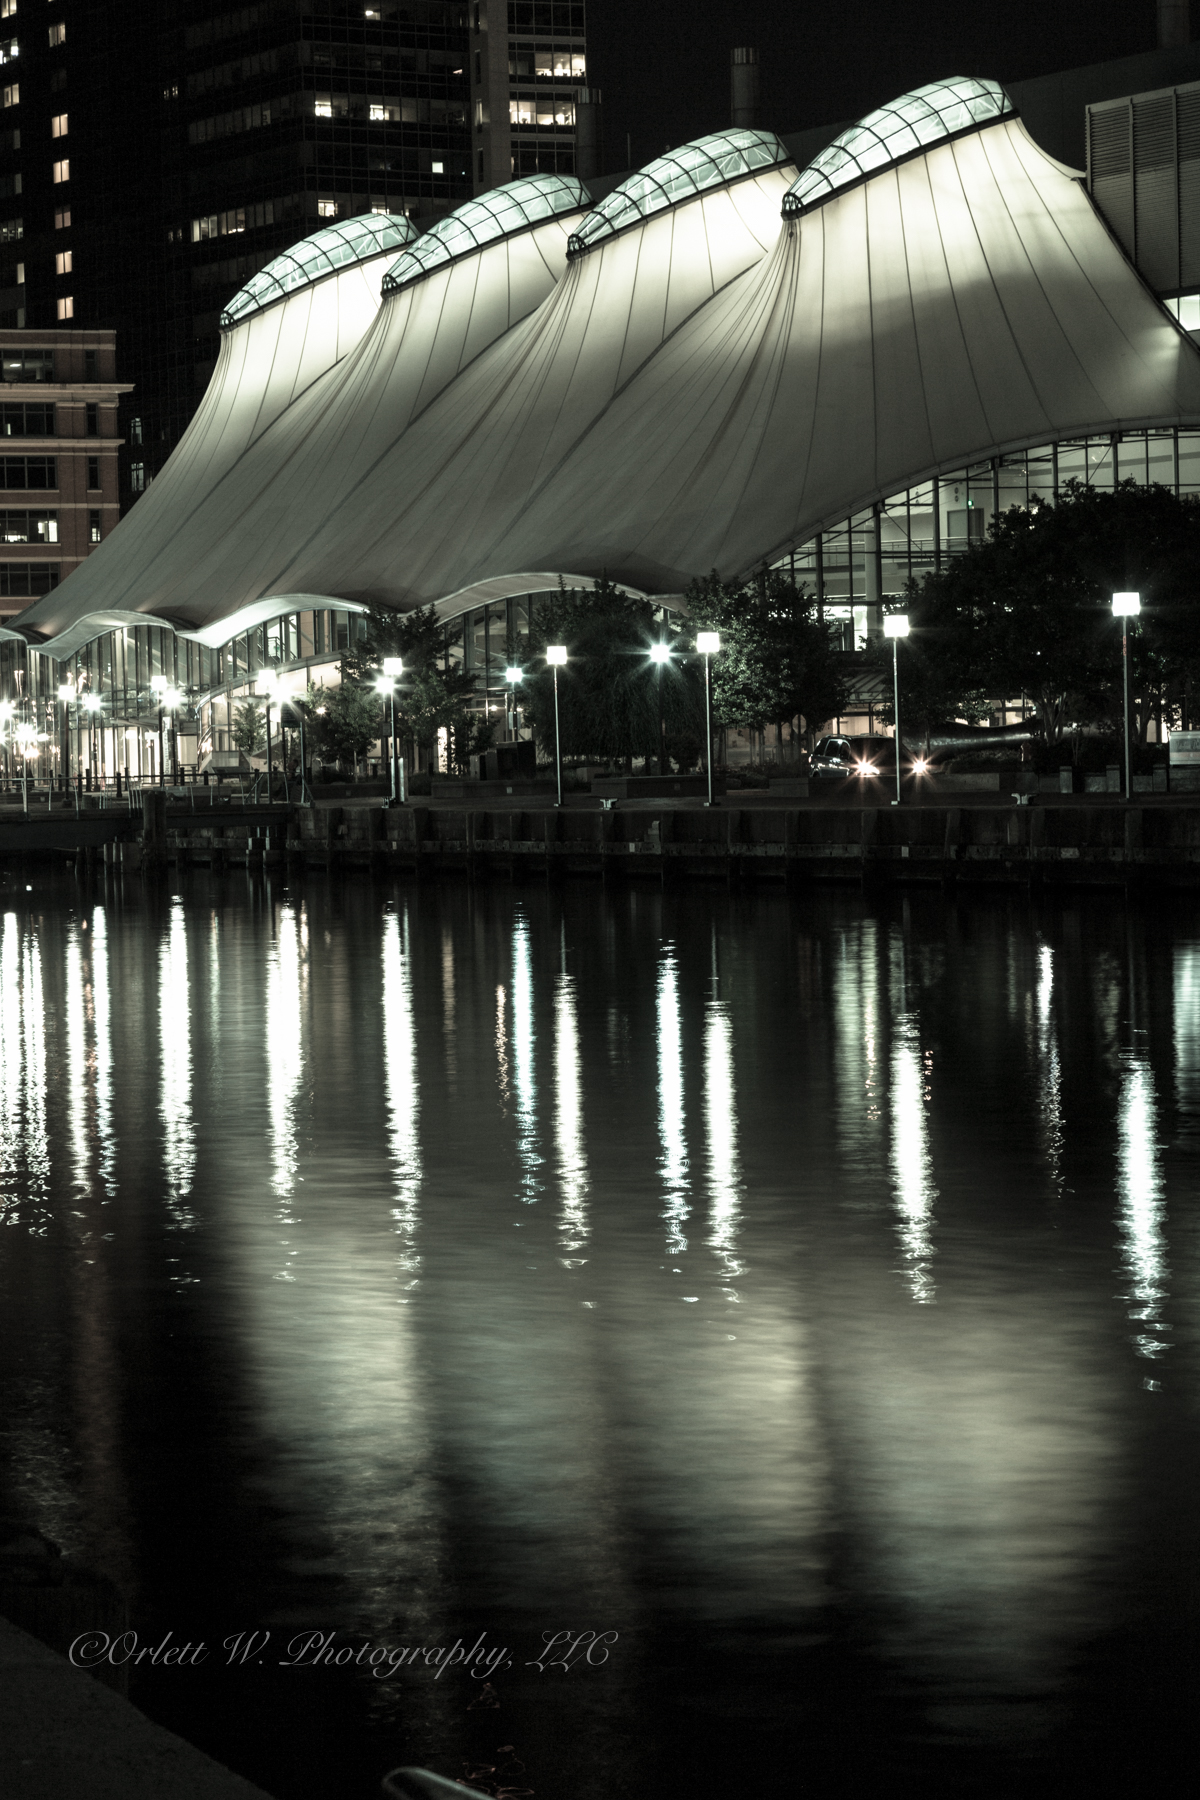 One Night on the Harbor